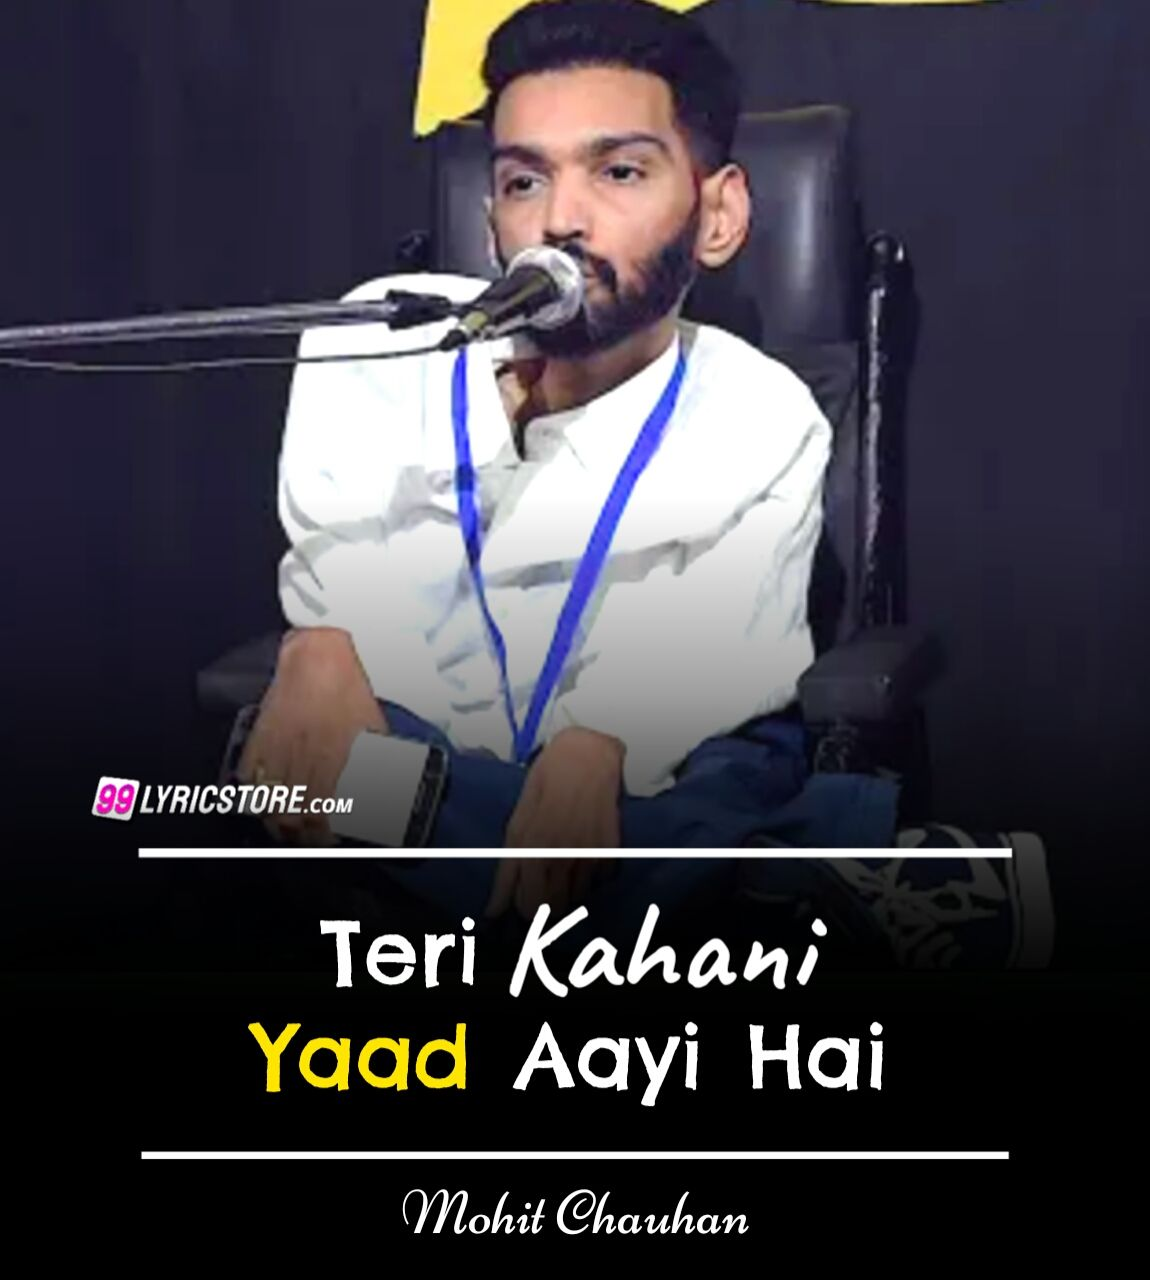 'Teri Kahani Yaad Aayi Hai' Poetry has written and performed by Mohit Chauhan on The Social House's Plateform.